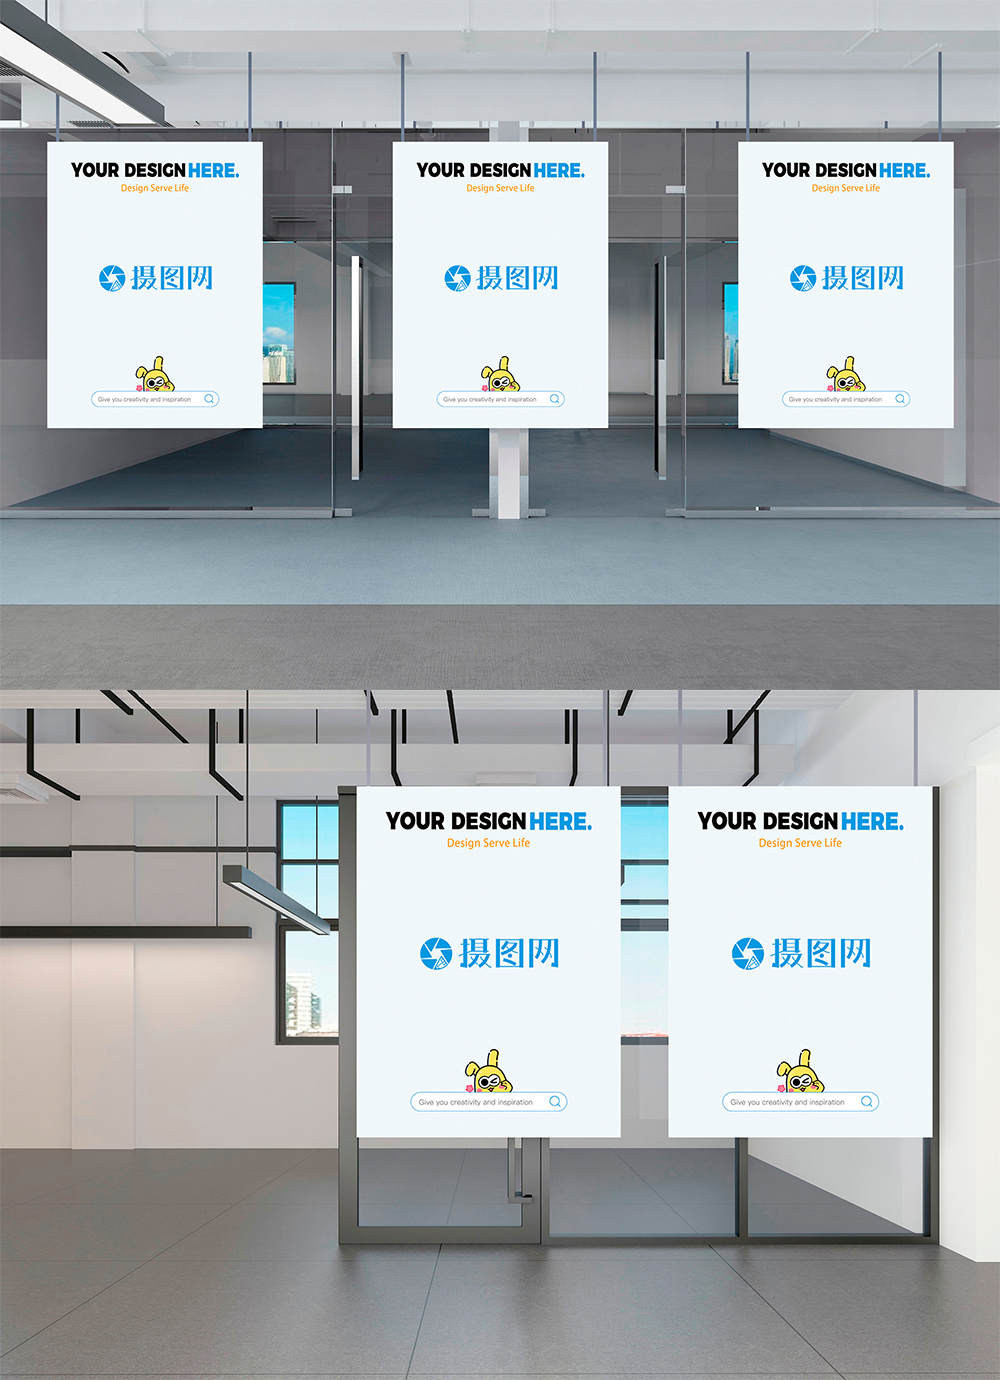 Exhibition Stand Mockup Psd Free : Propaganda poster mockup in exhibition hall template image picture